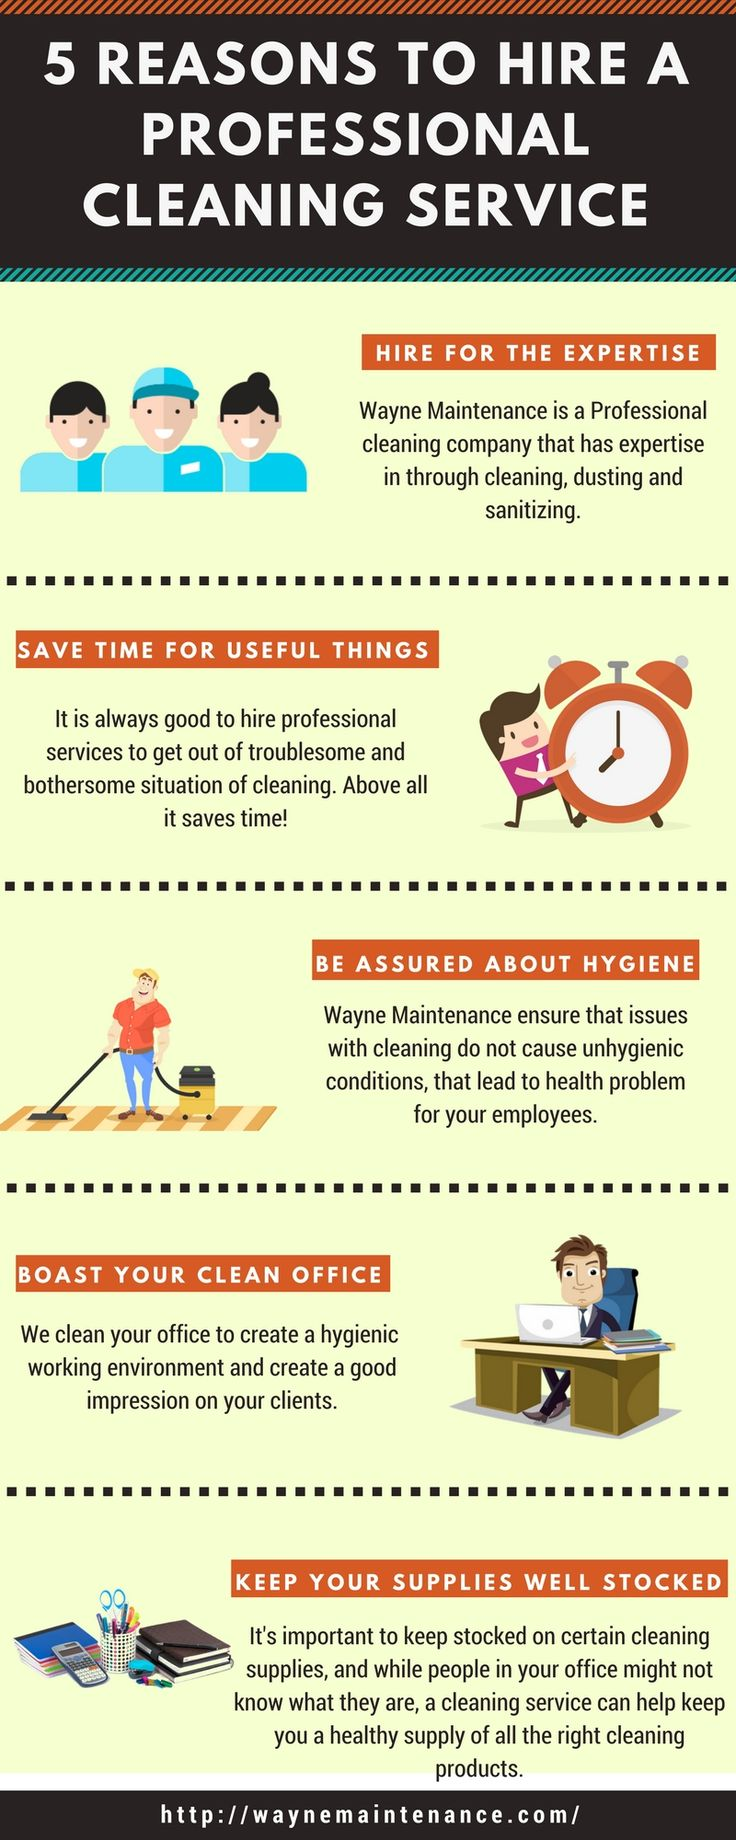 Professional cleaning service helps you to maintain your surrounding hygienic and fresh. To know more check 5 reasons to hire a professional cleaning services!